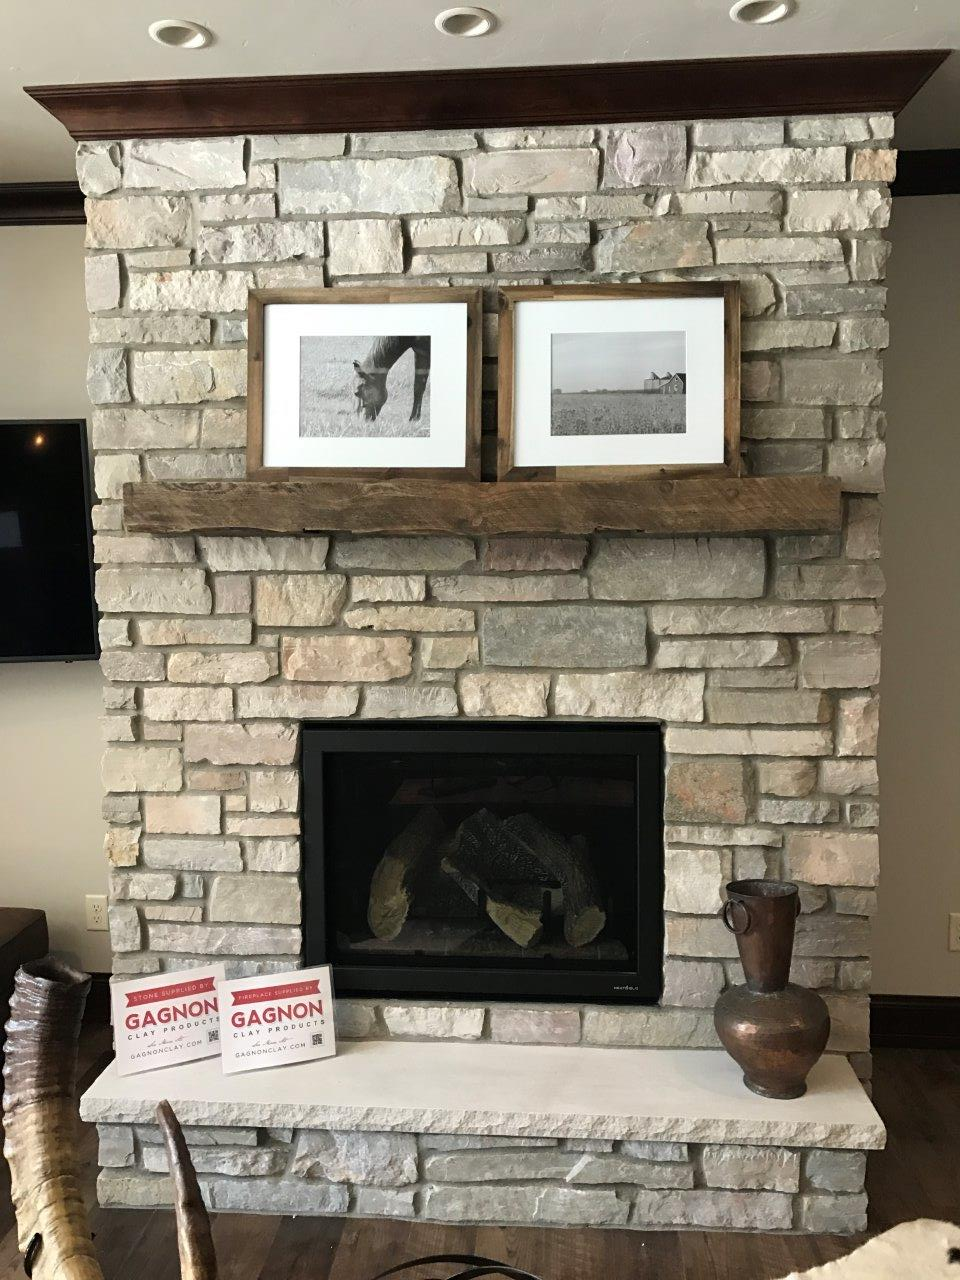 Halquist Chilton Ledgestone  Fireplace  Gagnon Clay Products